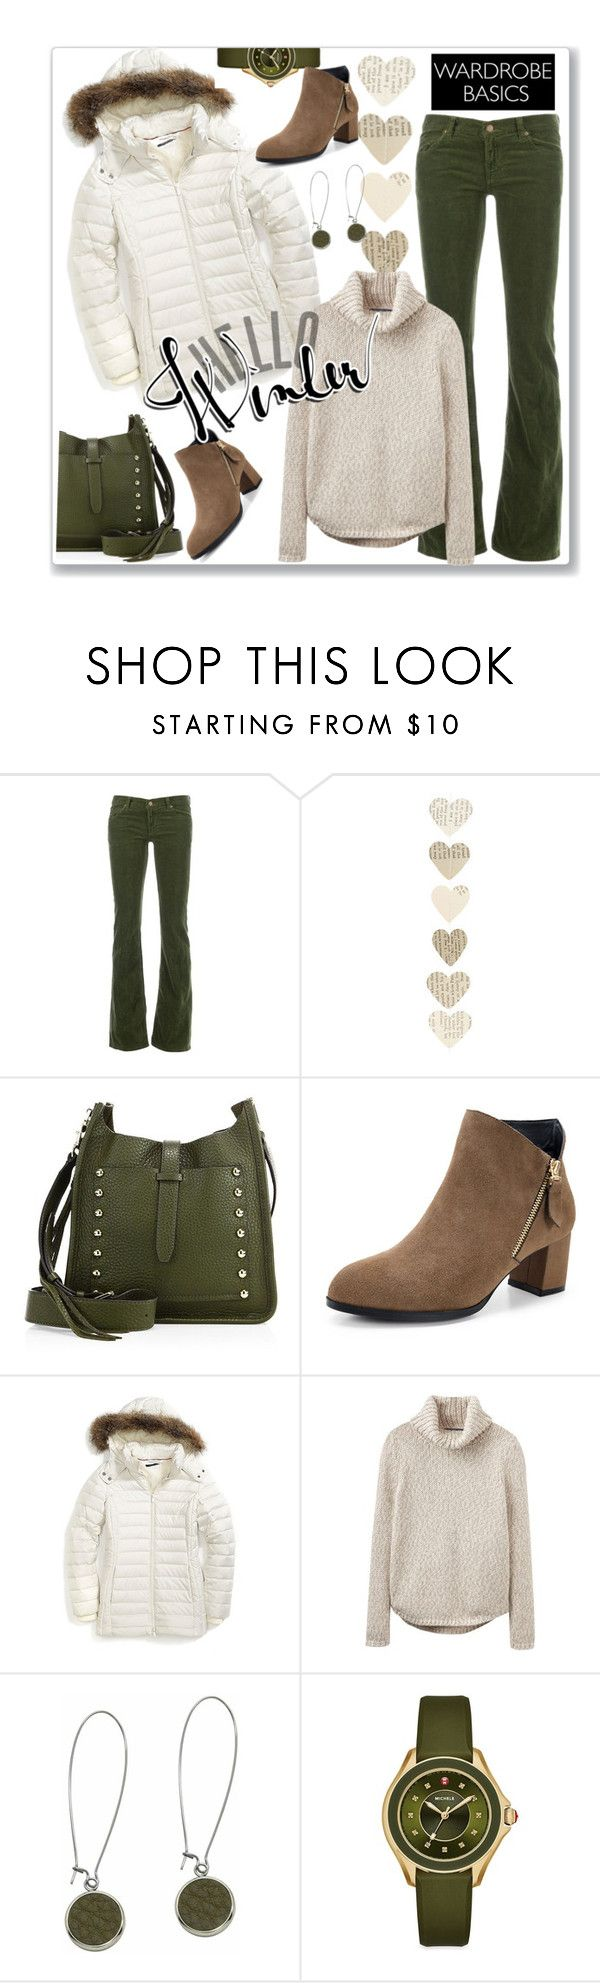 """""""Olive and Cream Winter"""" by ahapplet ❤ liked on Polyvore featuring Golden Goose, Rebecca Minkoff, Tommy Hilfiger, Joules, N'Damus, Michele, puffer and ahapplet"""